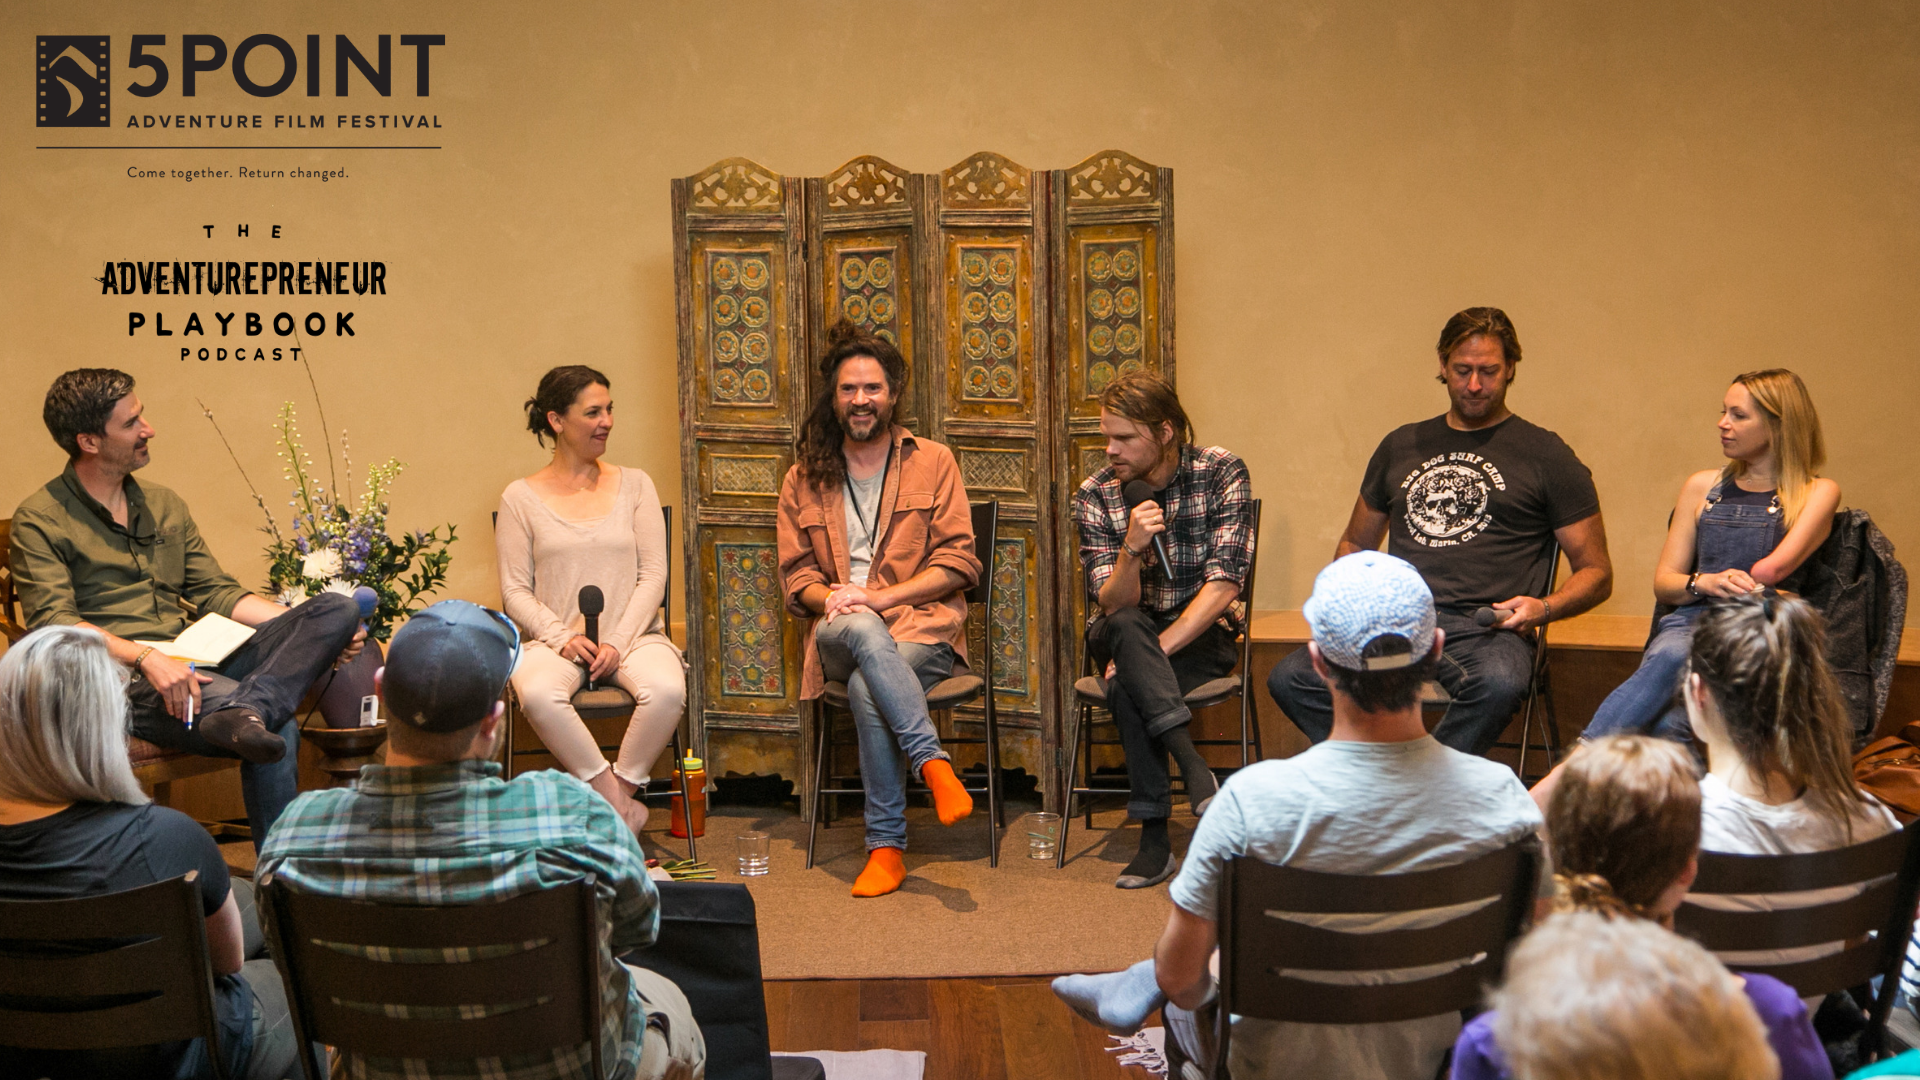 Panel discussion at  True Nature Healing Arts  in Carbondale, CO about the 5points (or core values) of the  5point Adventure Film Festival . Left to right:  Regna Jones ,  Cameron Ford ,  Charlie Turnbull ,  Ian Glover  and  Sarah Herron . (Photo:  Frank Scotti)